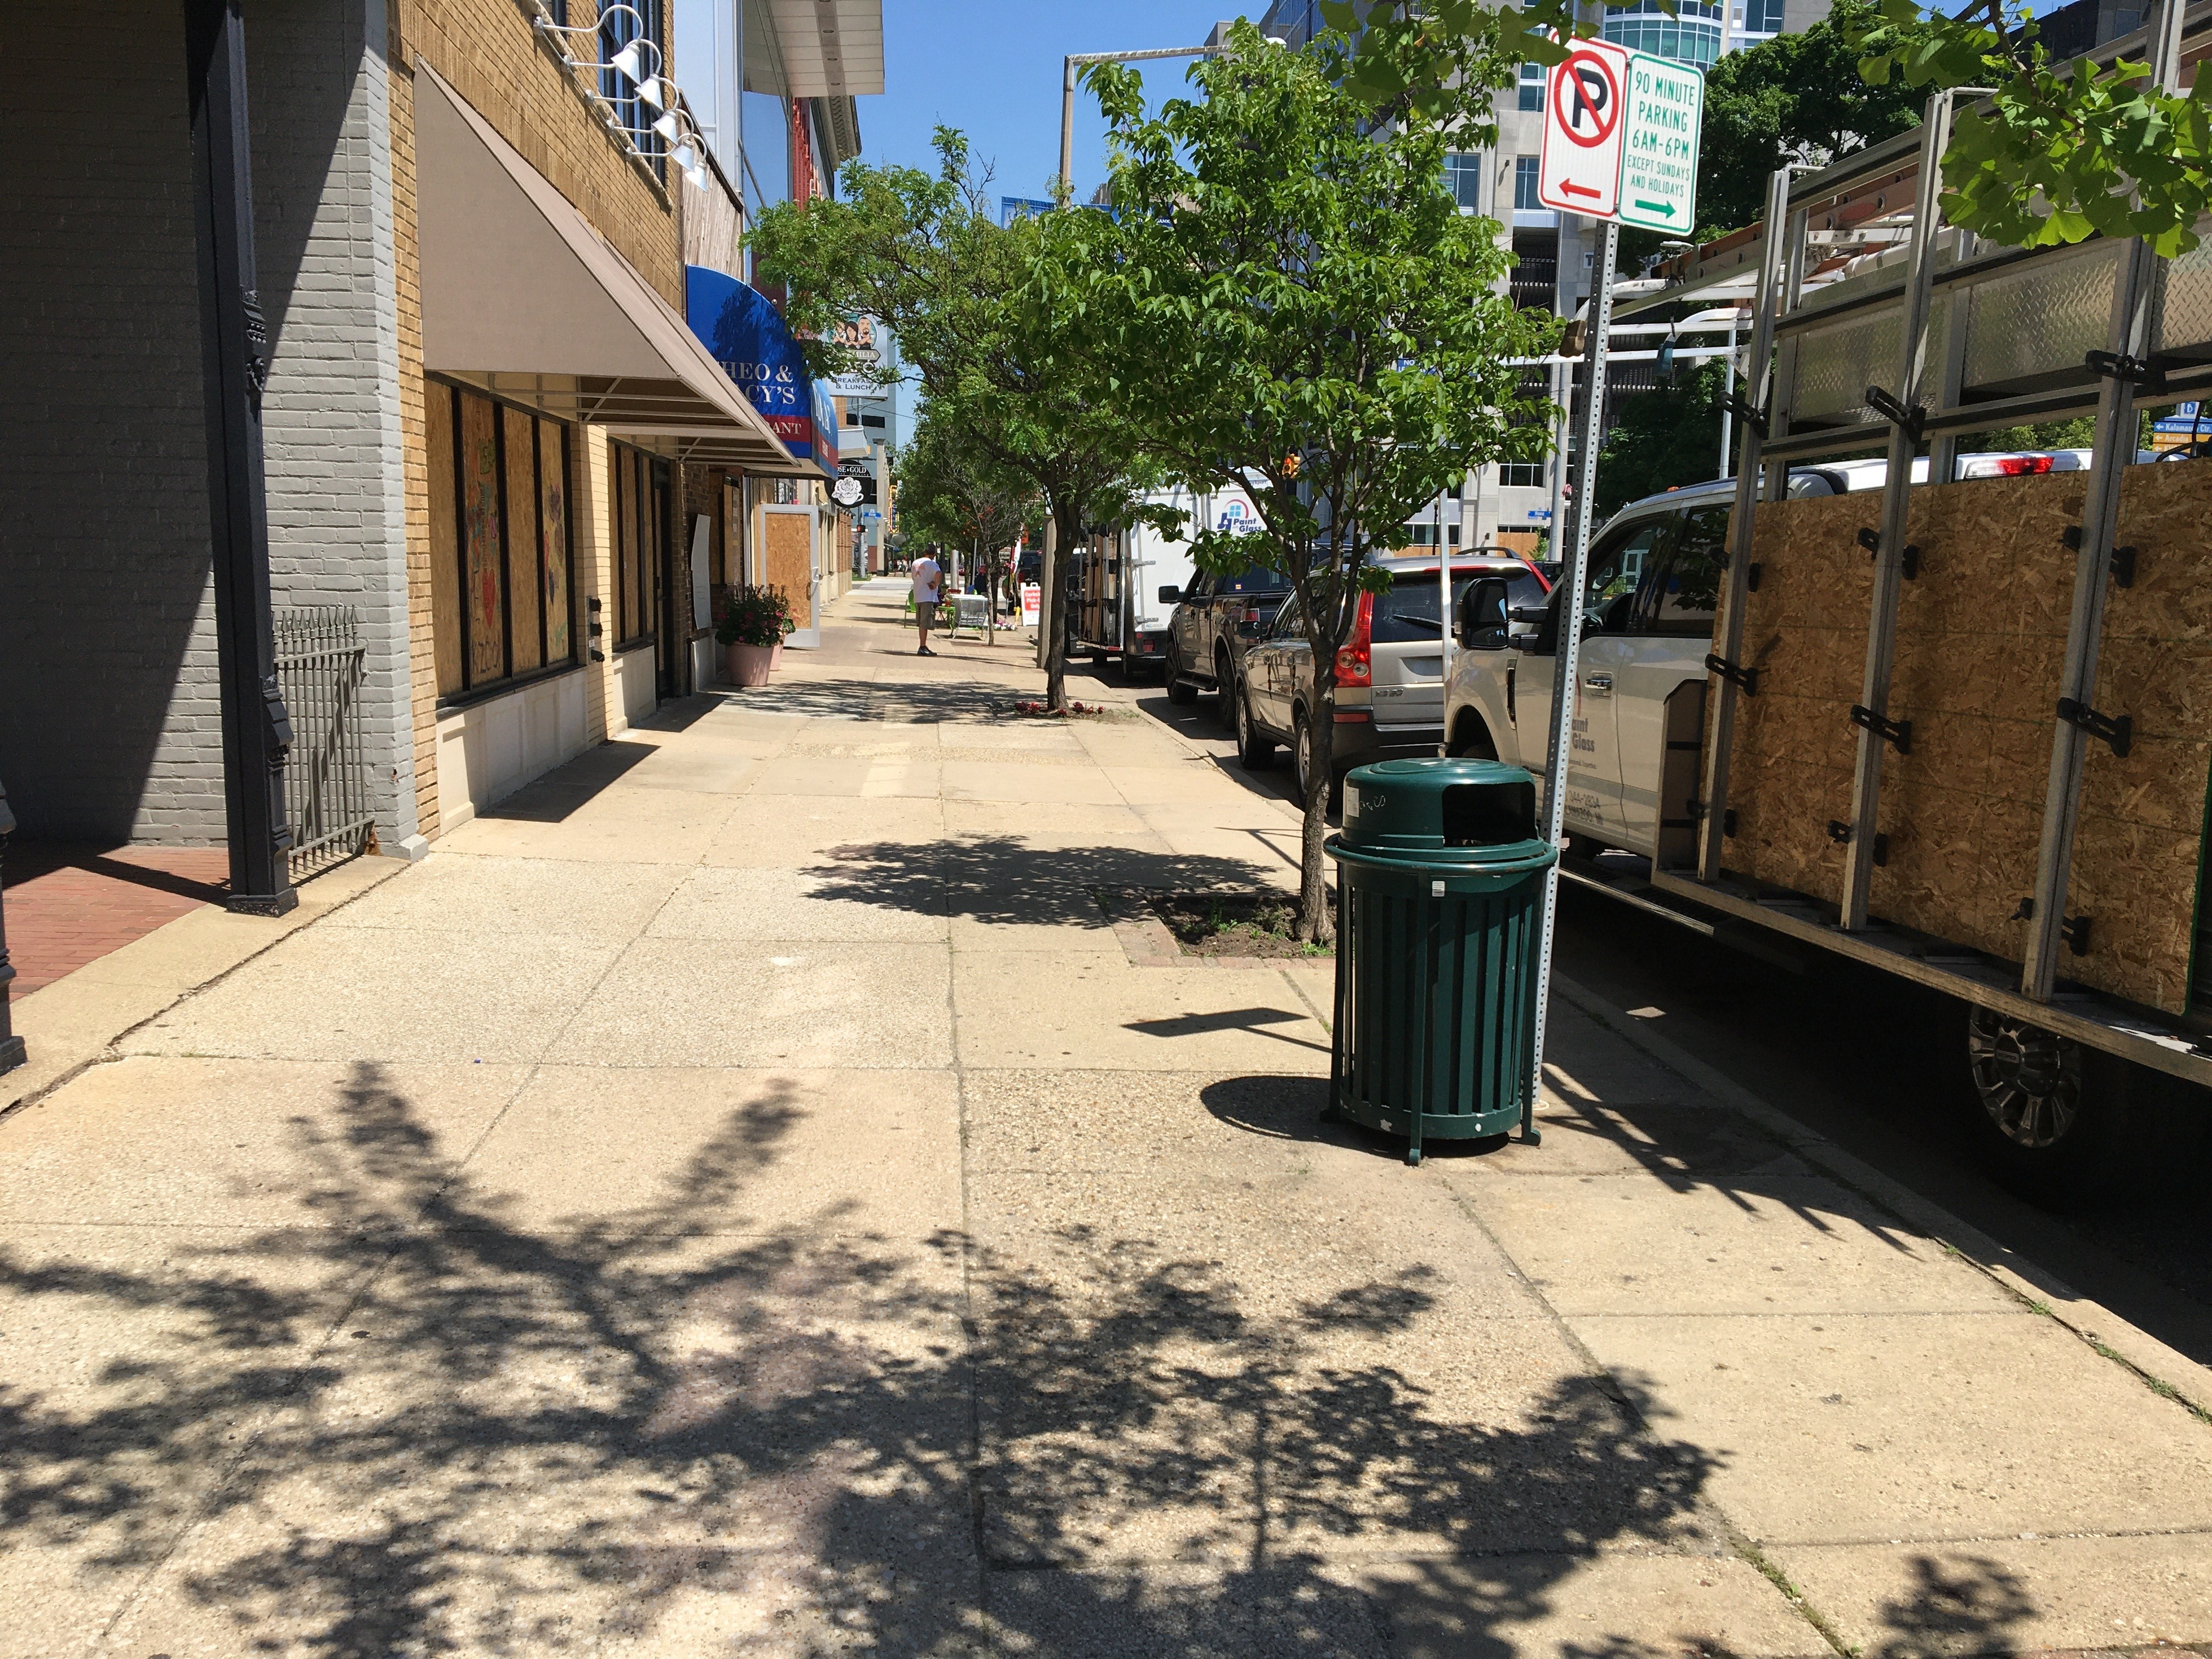 Downtown Kalamazoo businesses begin boarding up windows and doors Tuesday, June 2, 2020, after the city declared it will enforce a curfew starting at 7 p.m. (WWMT/Manny Revilla)